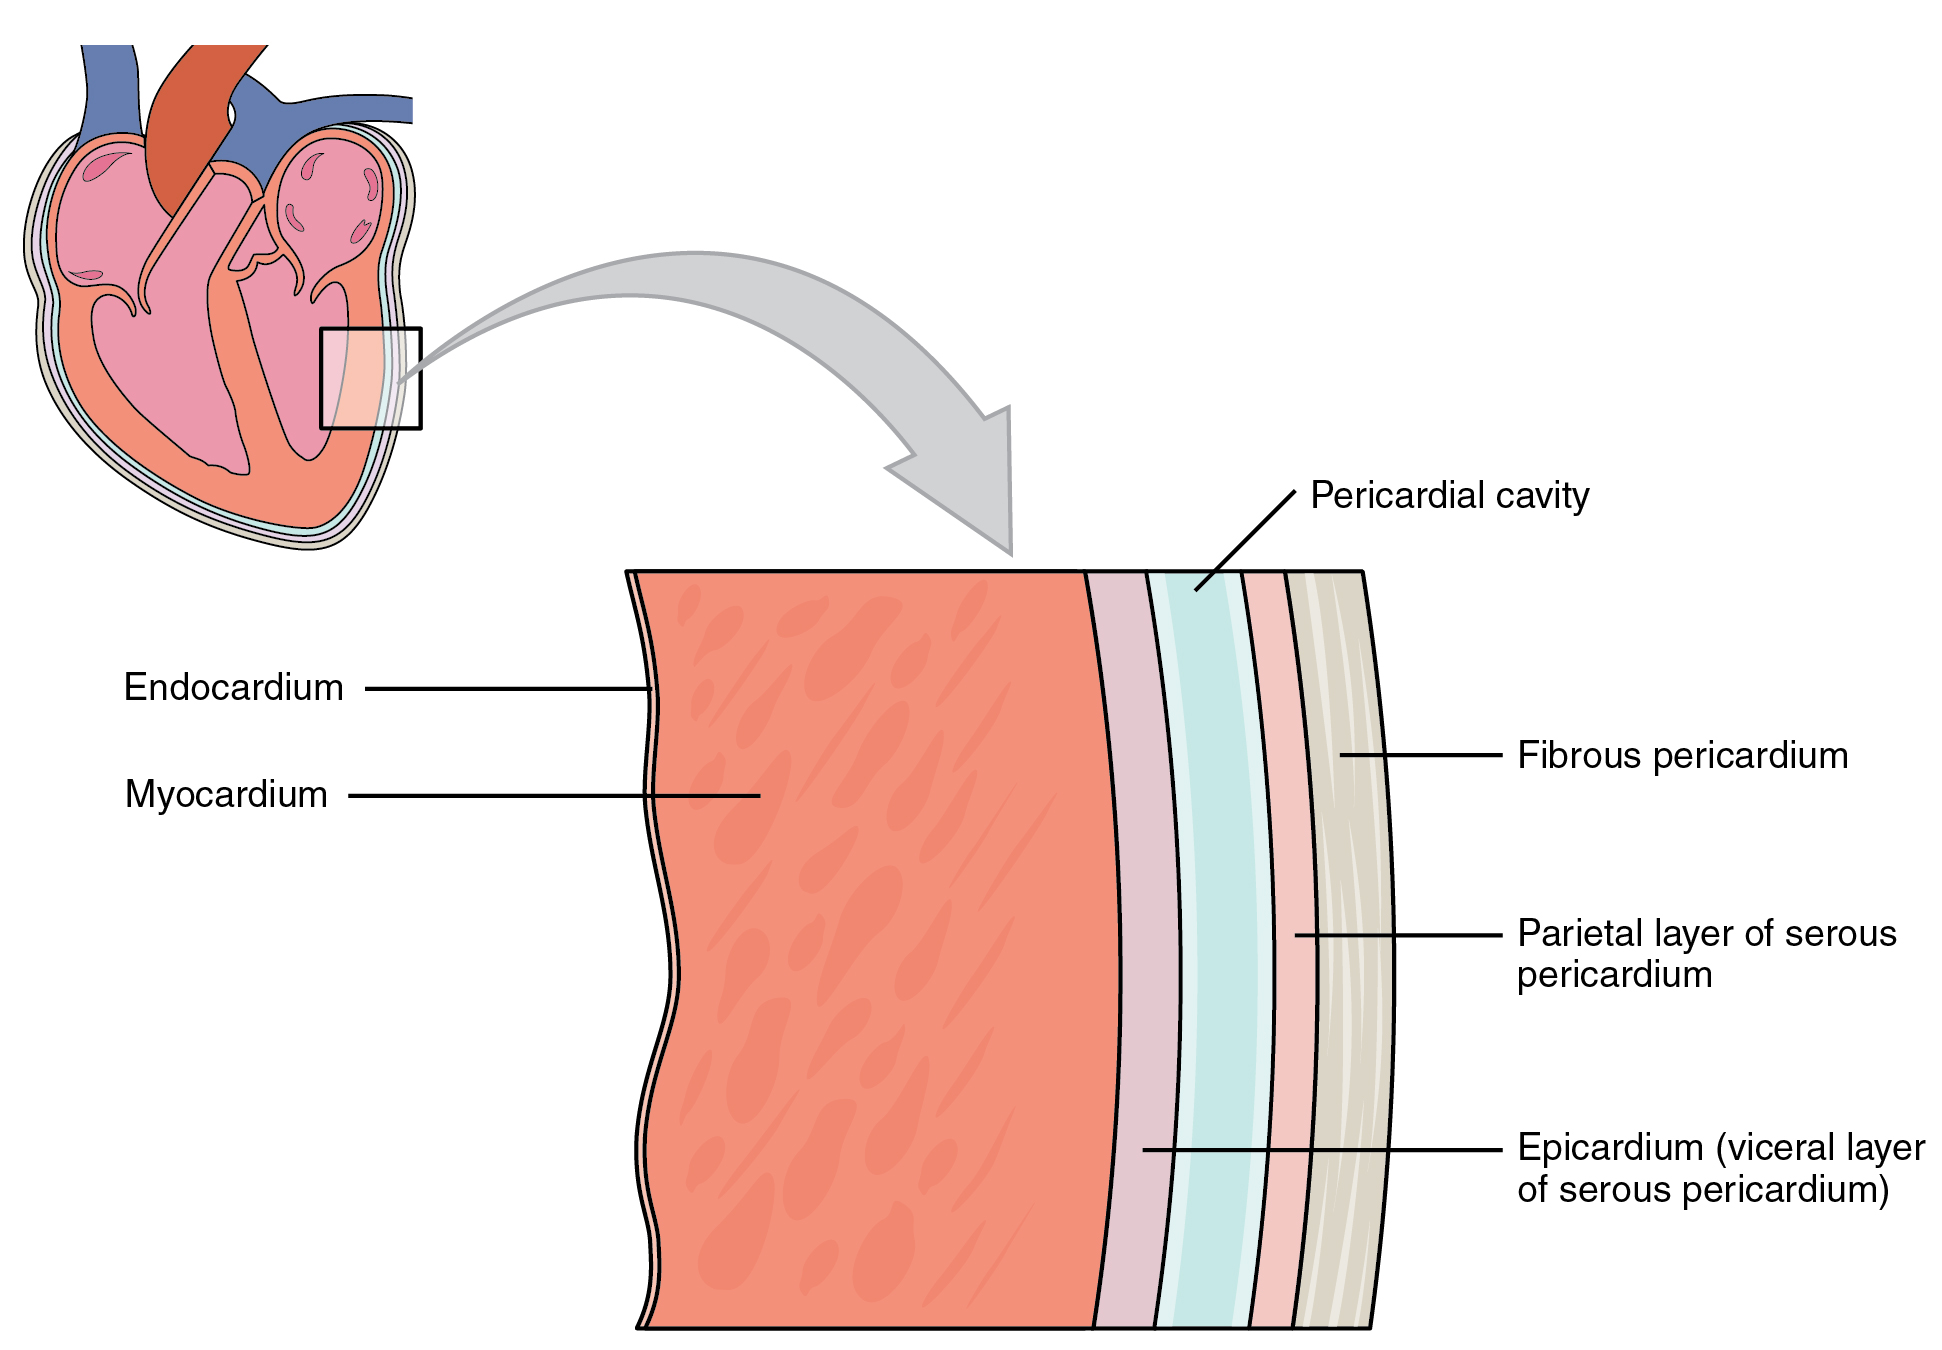 This image shows a magnified view of the structure of the heart wall.